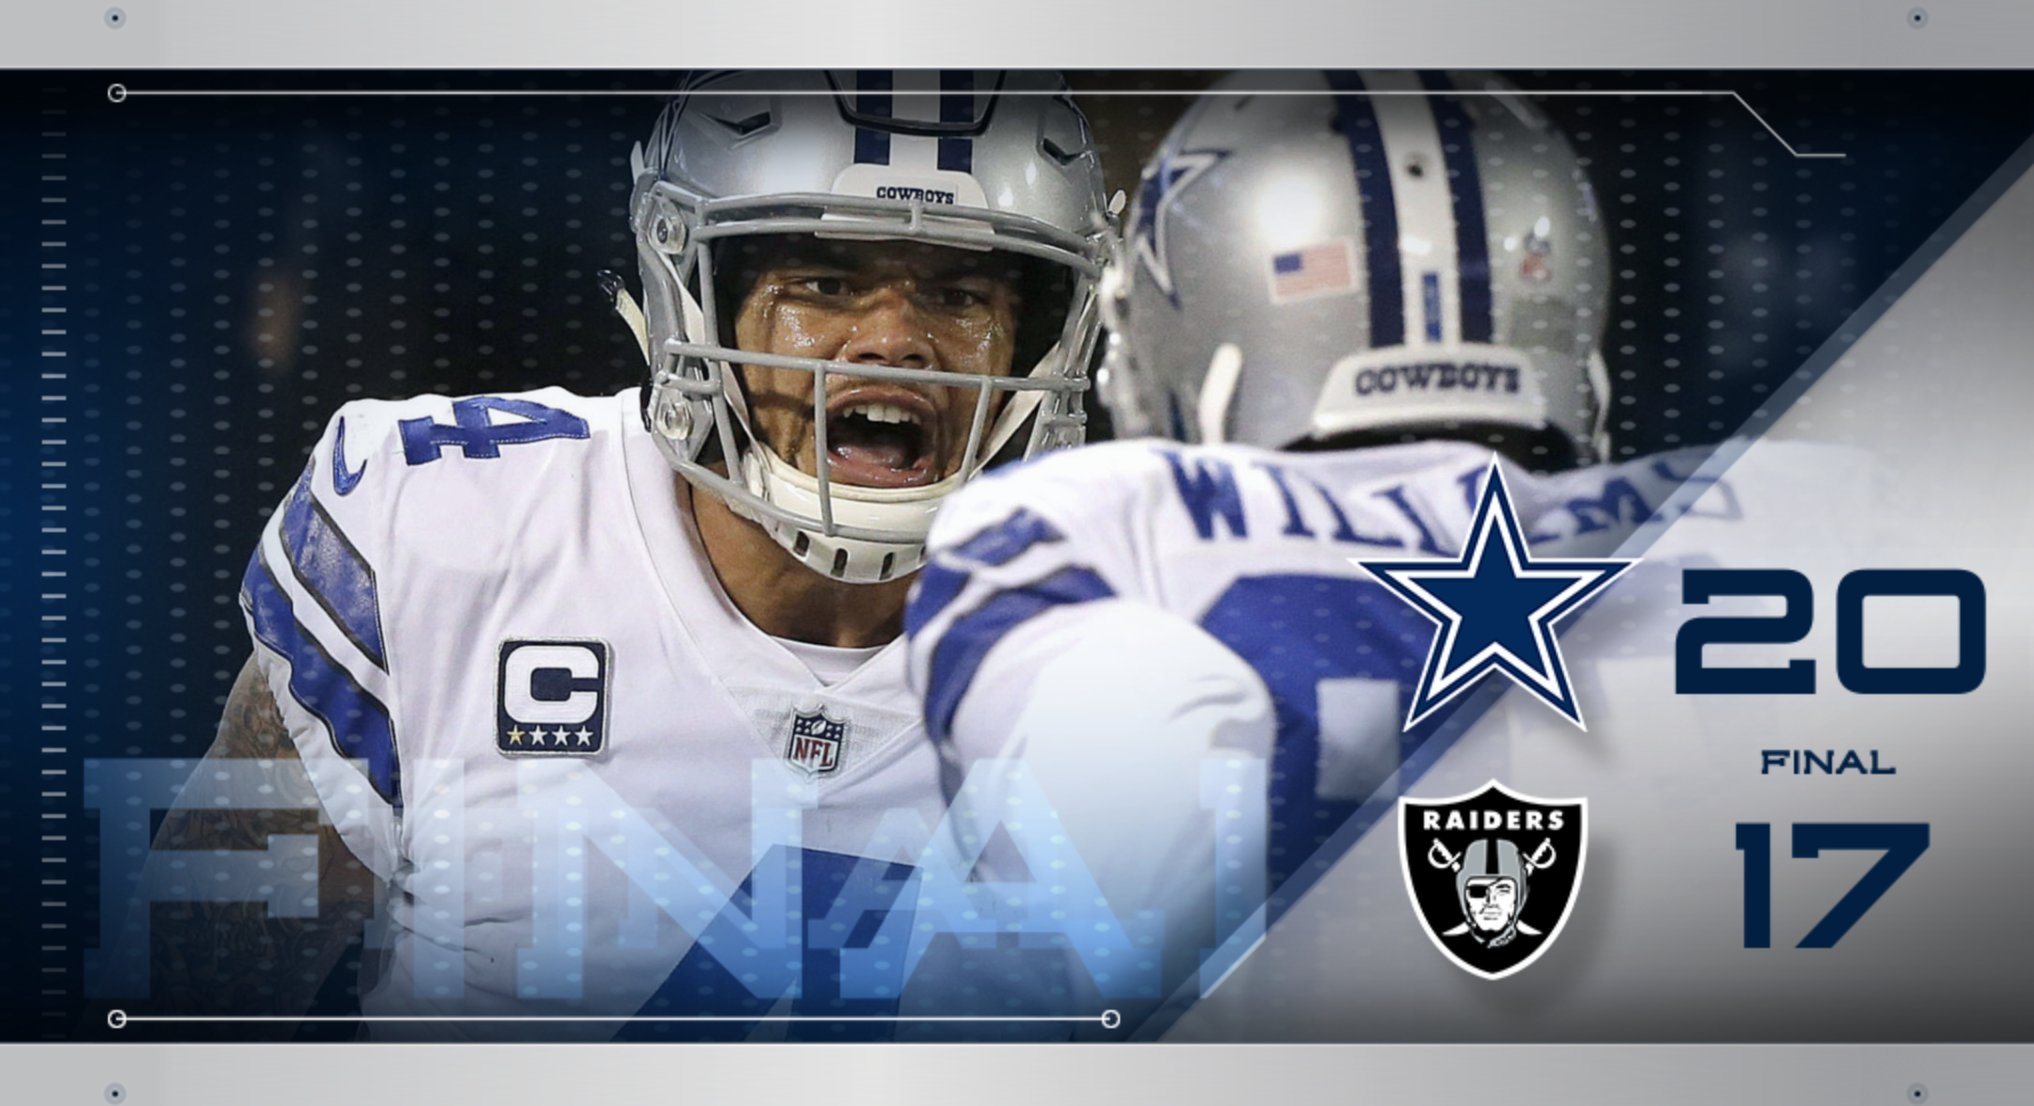 #DallasCowboys get the W in a thrilling @SNFonNBC #DALvsOAK https://t.co/vAvwNueRy8